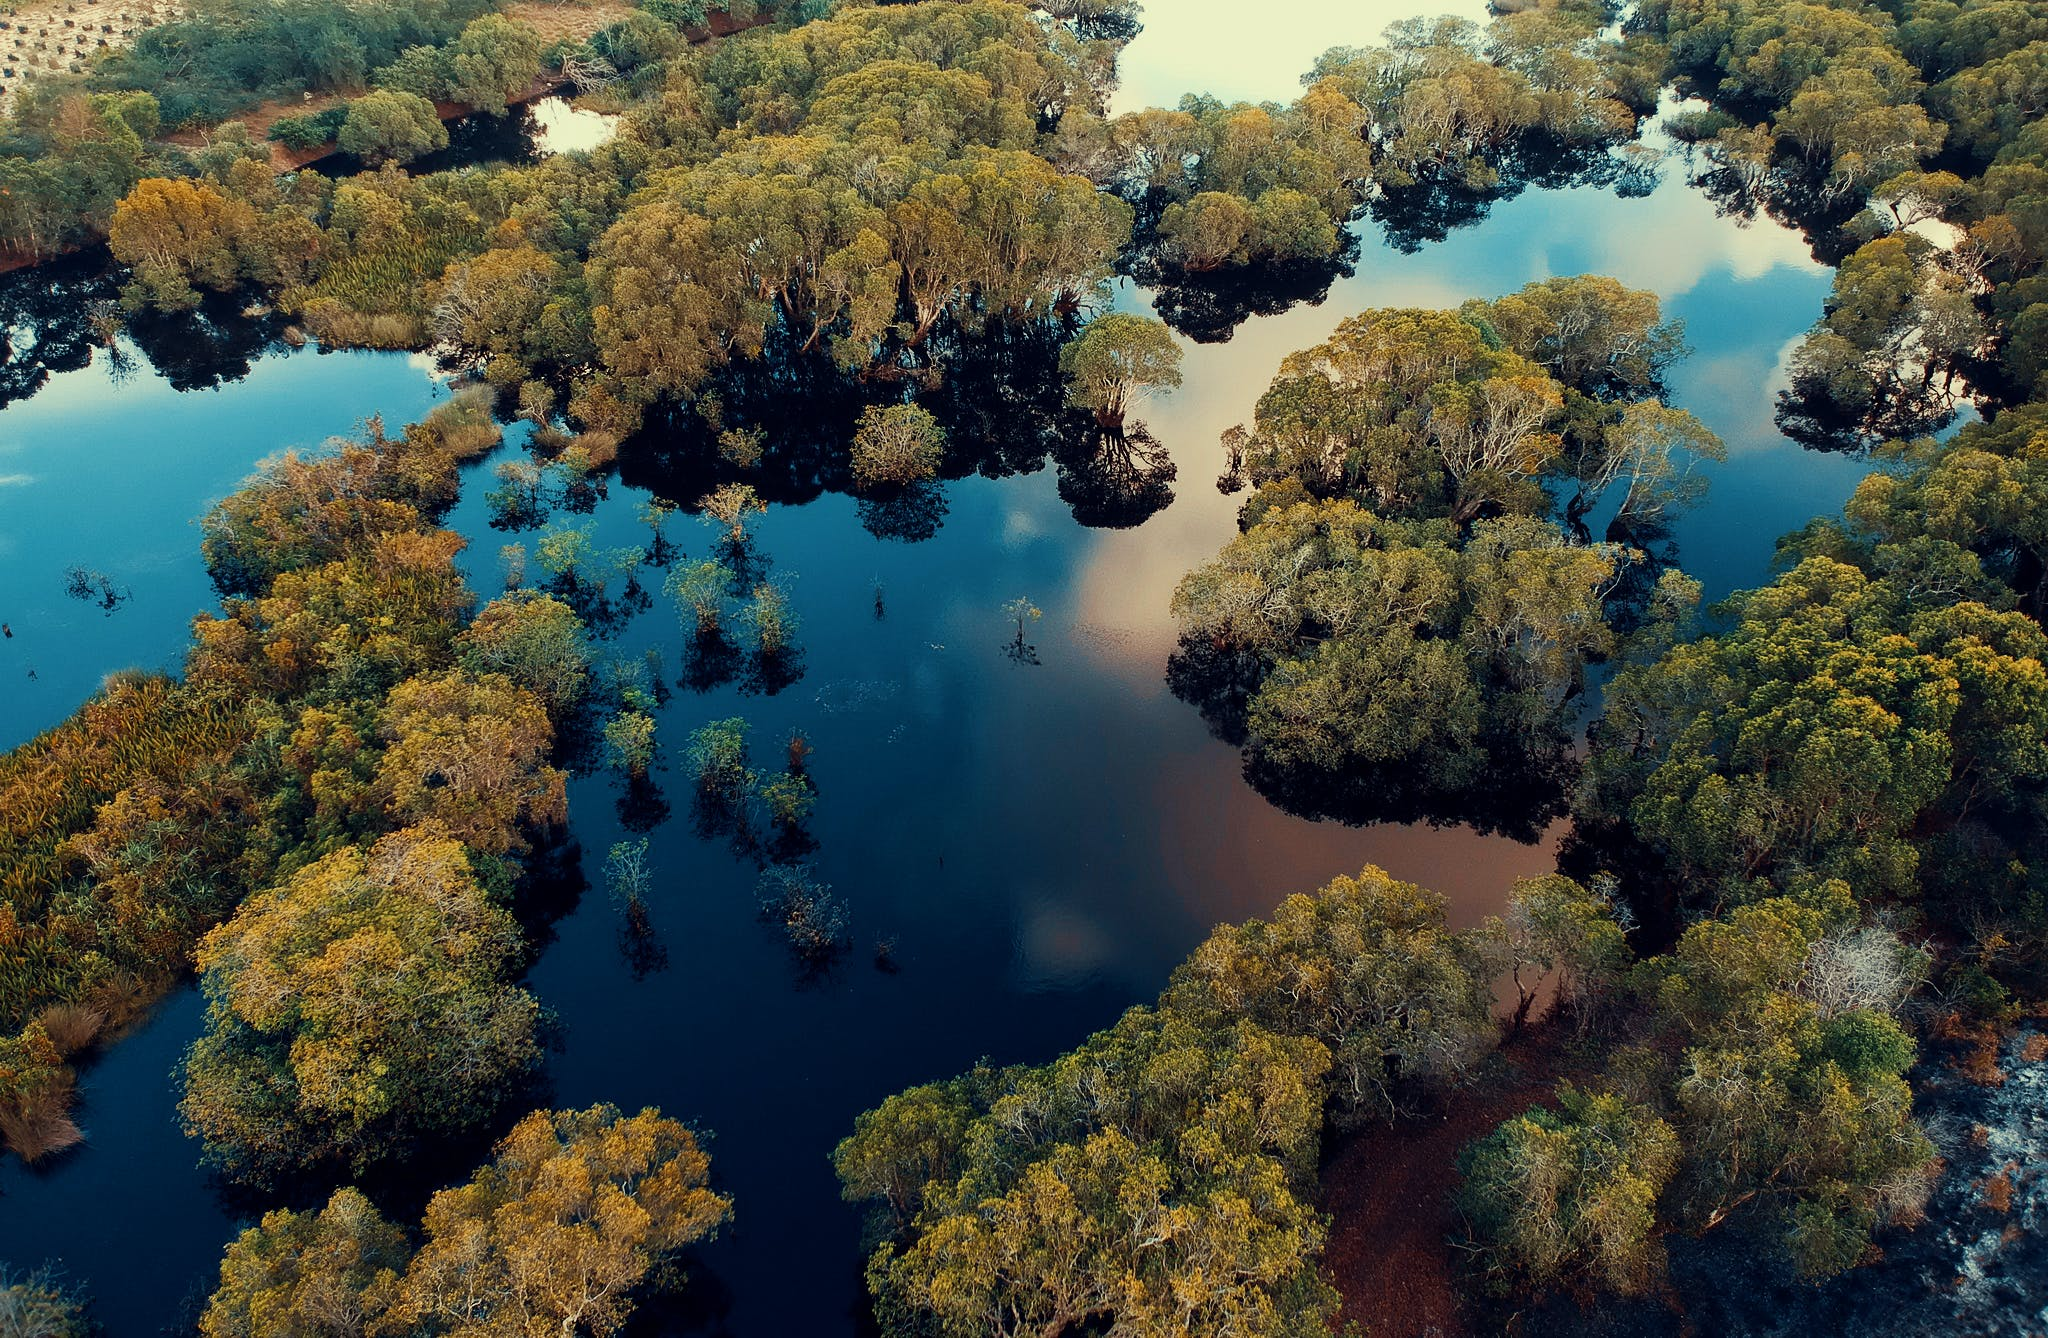 Aerial View Photography of Green Leaf Trees Surrounded by Body of Water at Daytime